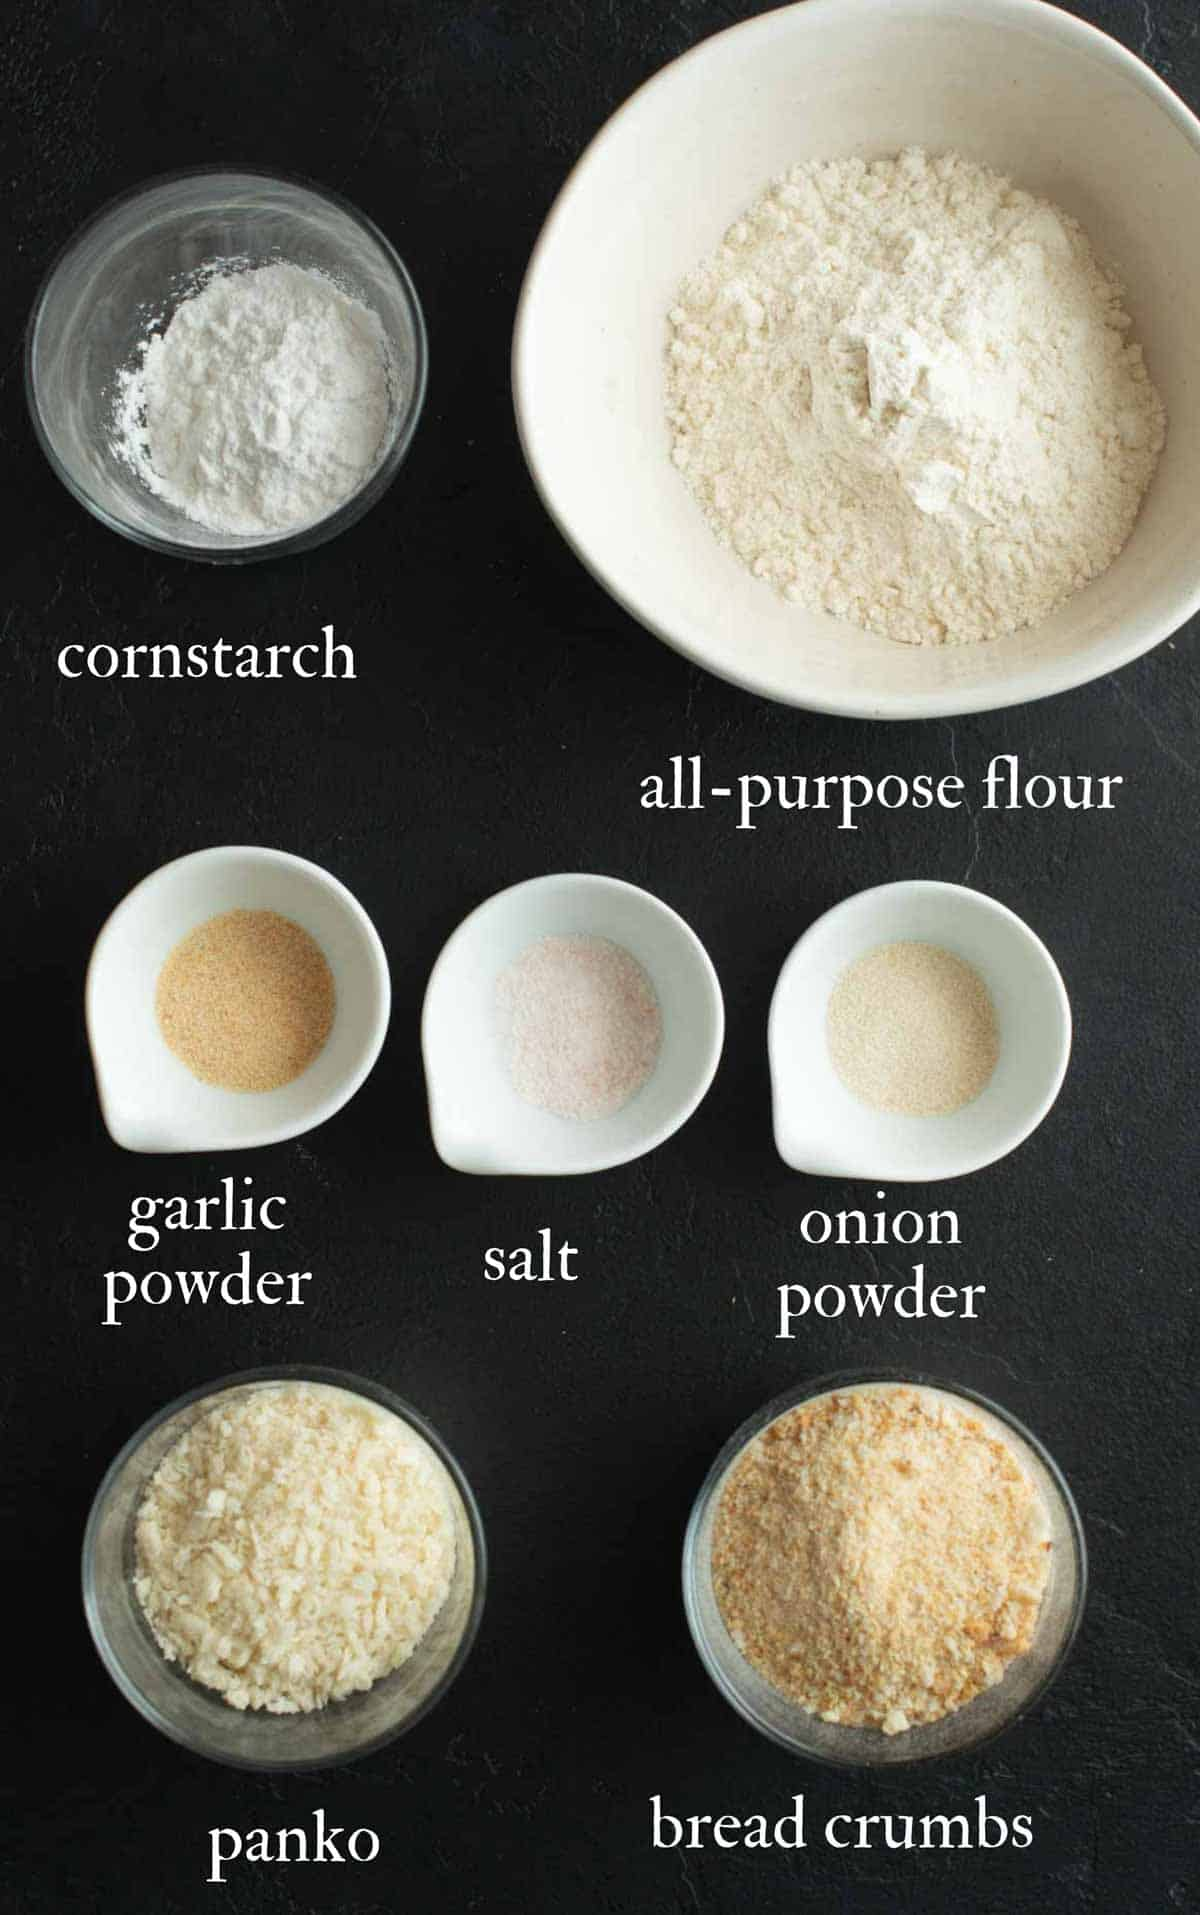 List of the ingredients used for this recipe